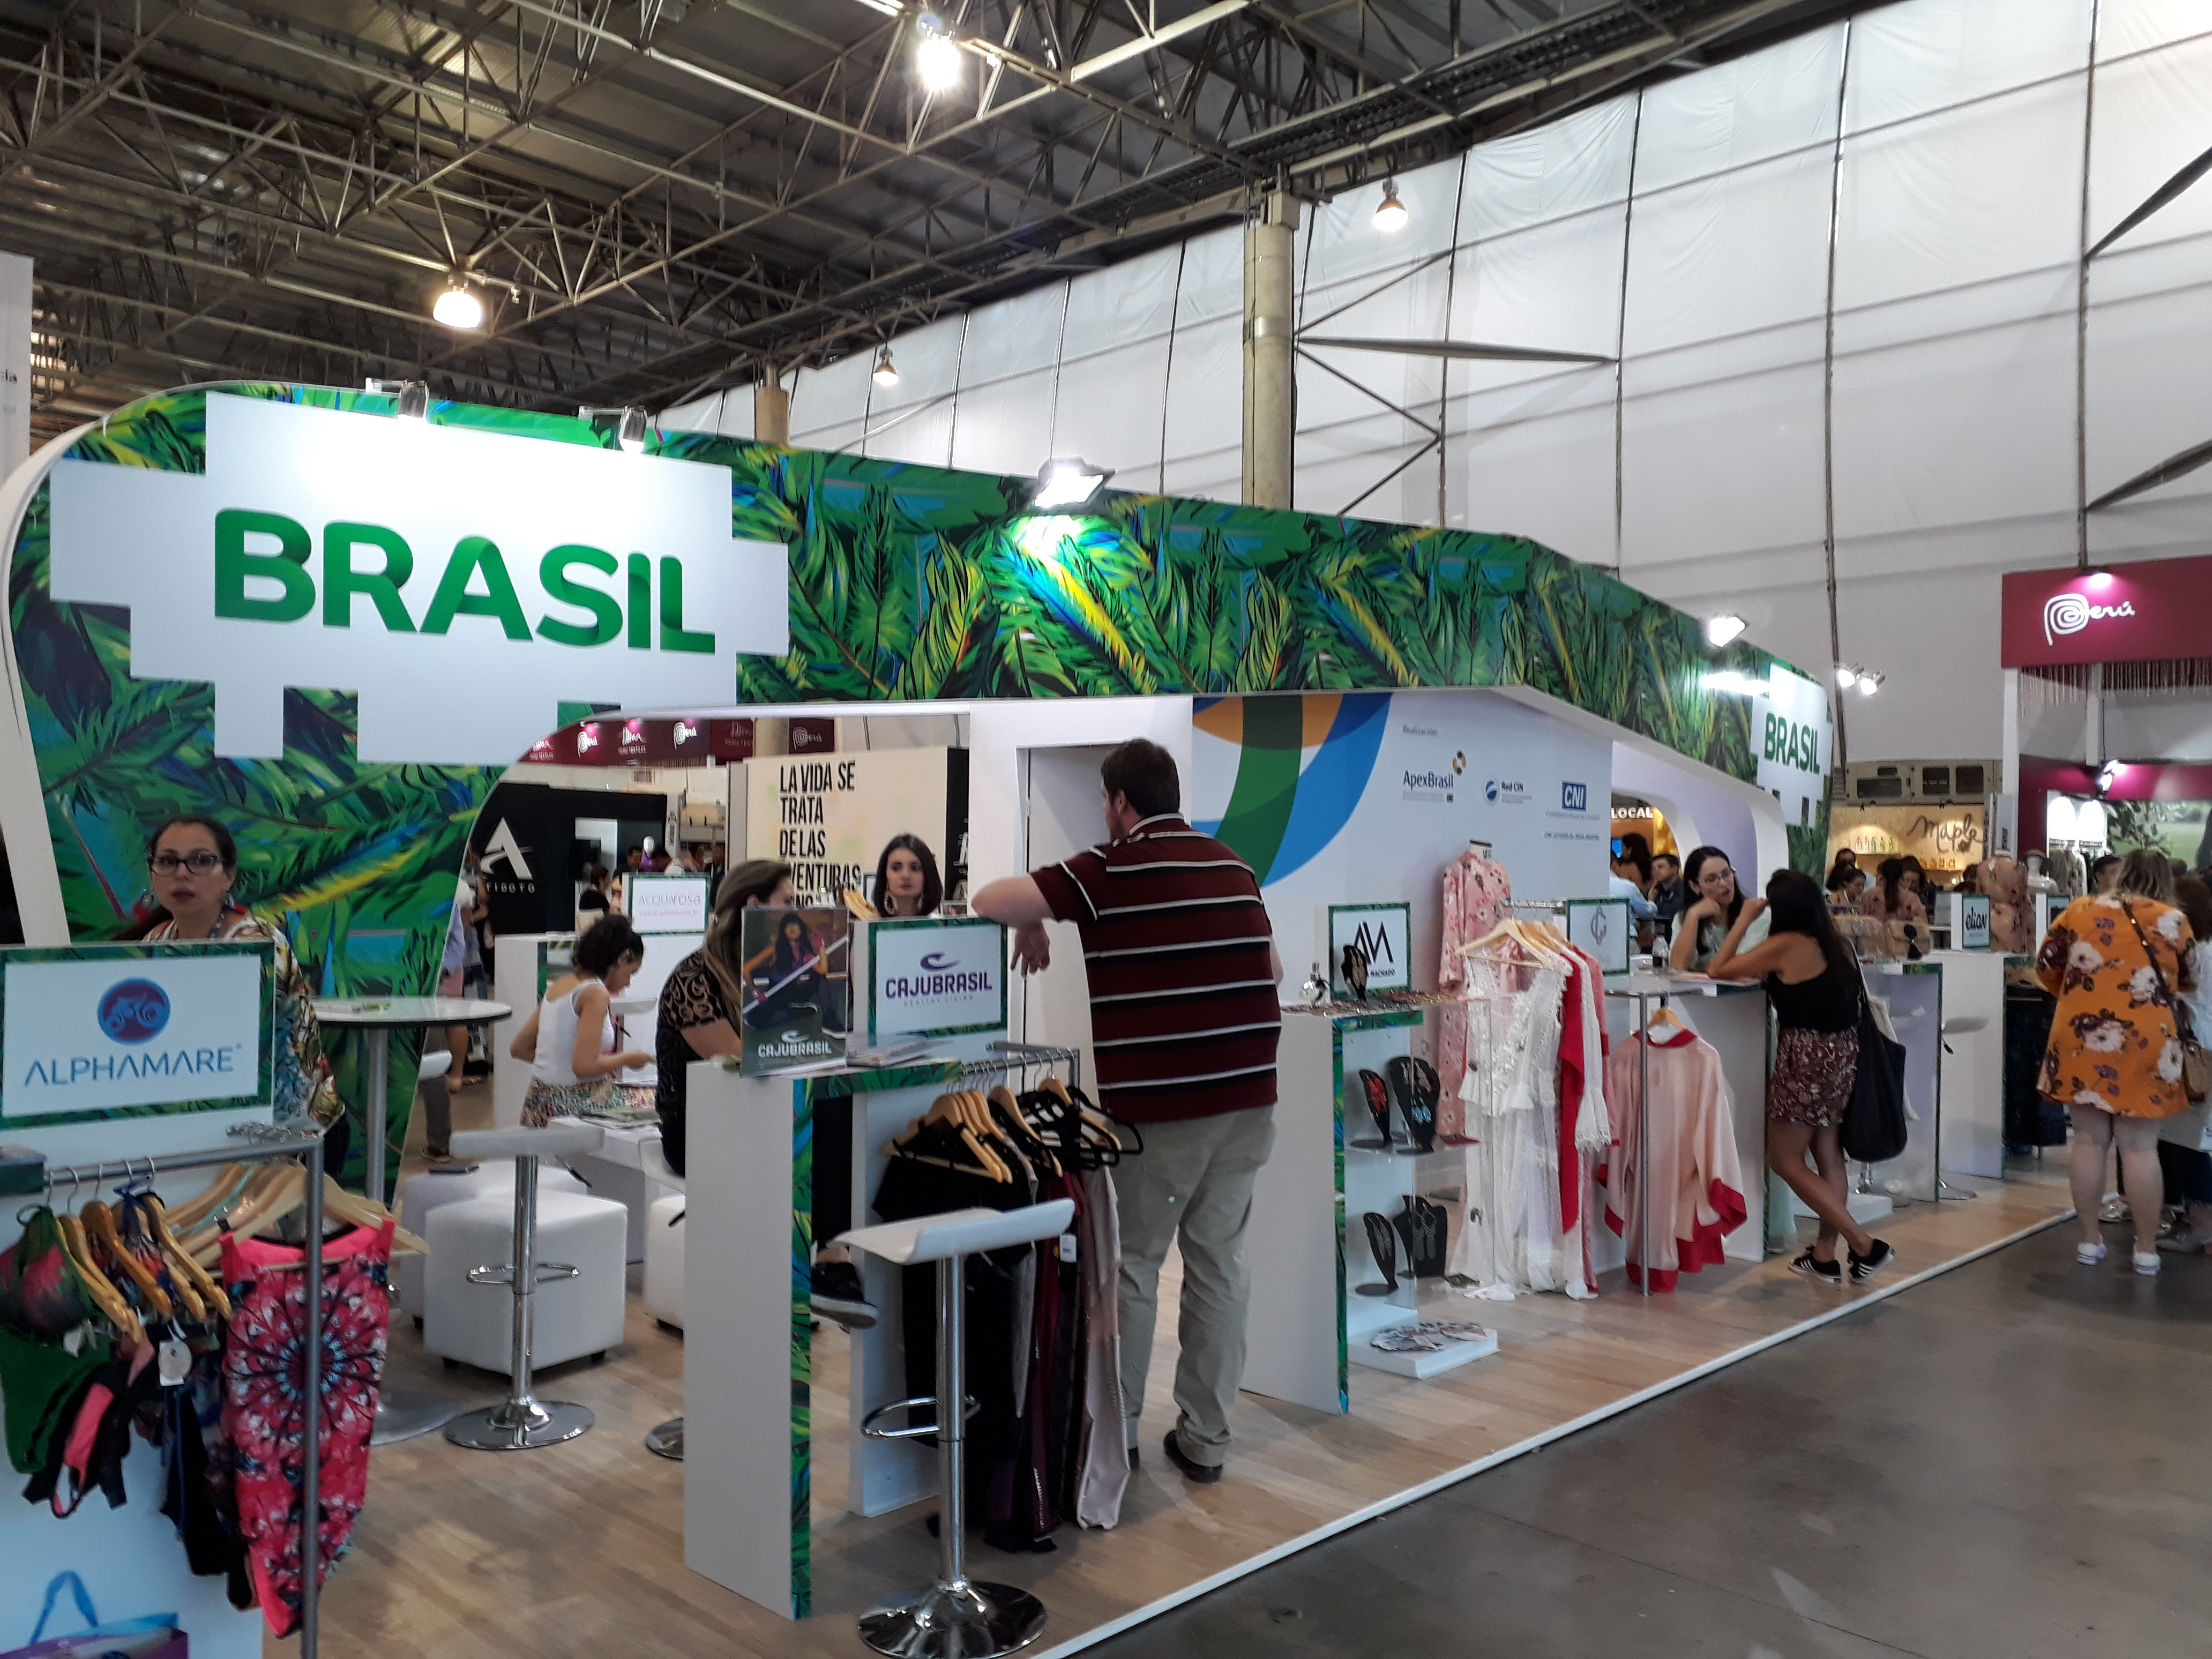 Brazilian government sends small brands to exhibit at Colombiamoda